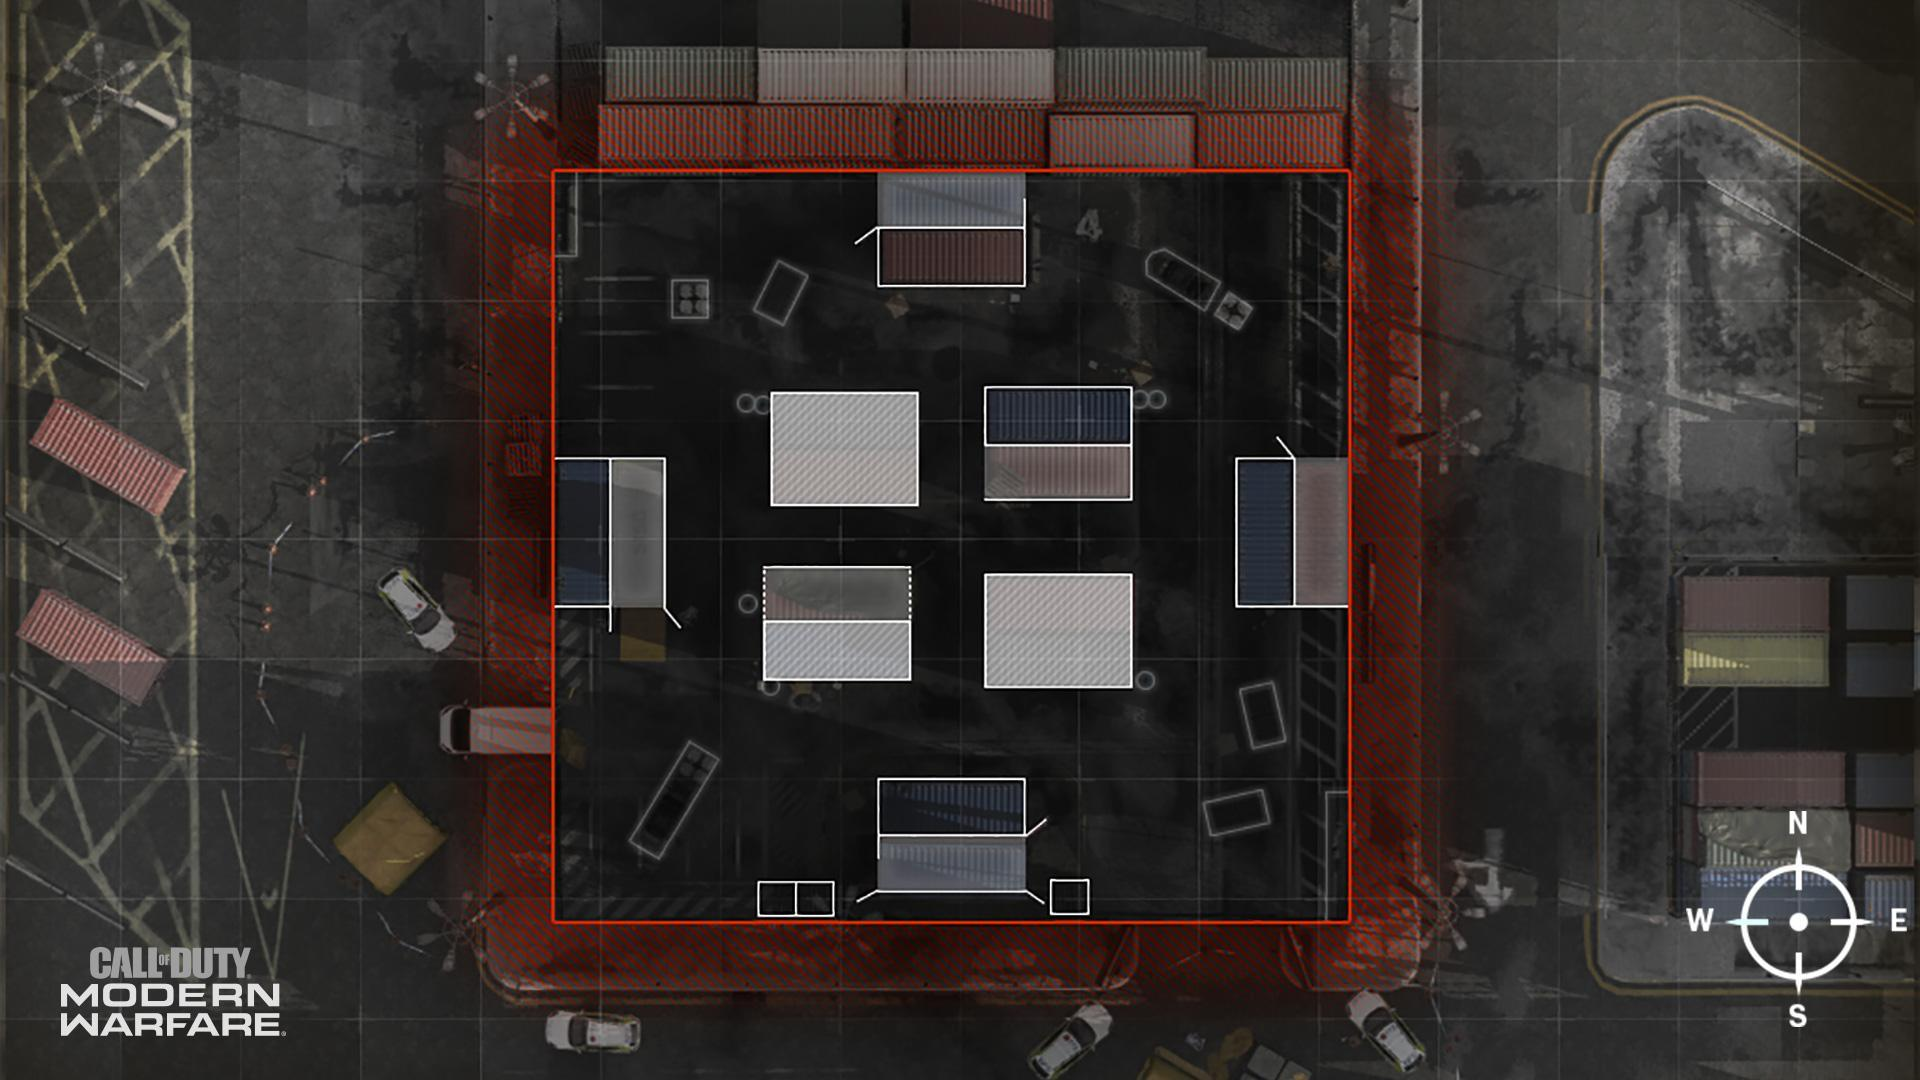 COD ModernWarfare Shipment Mini Map Layout